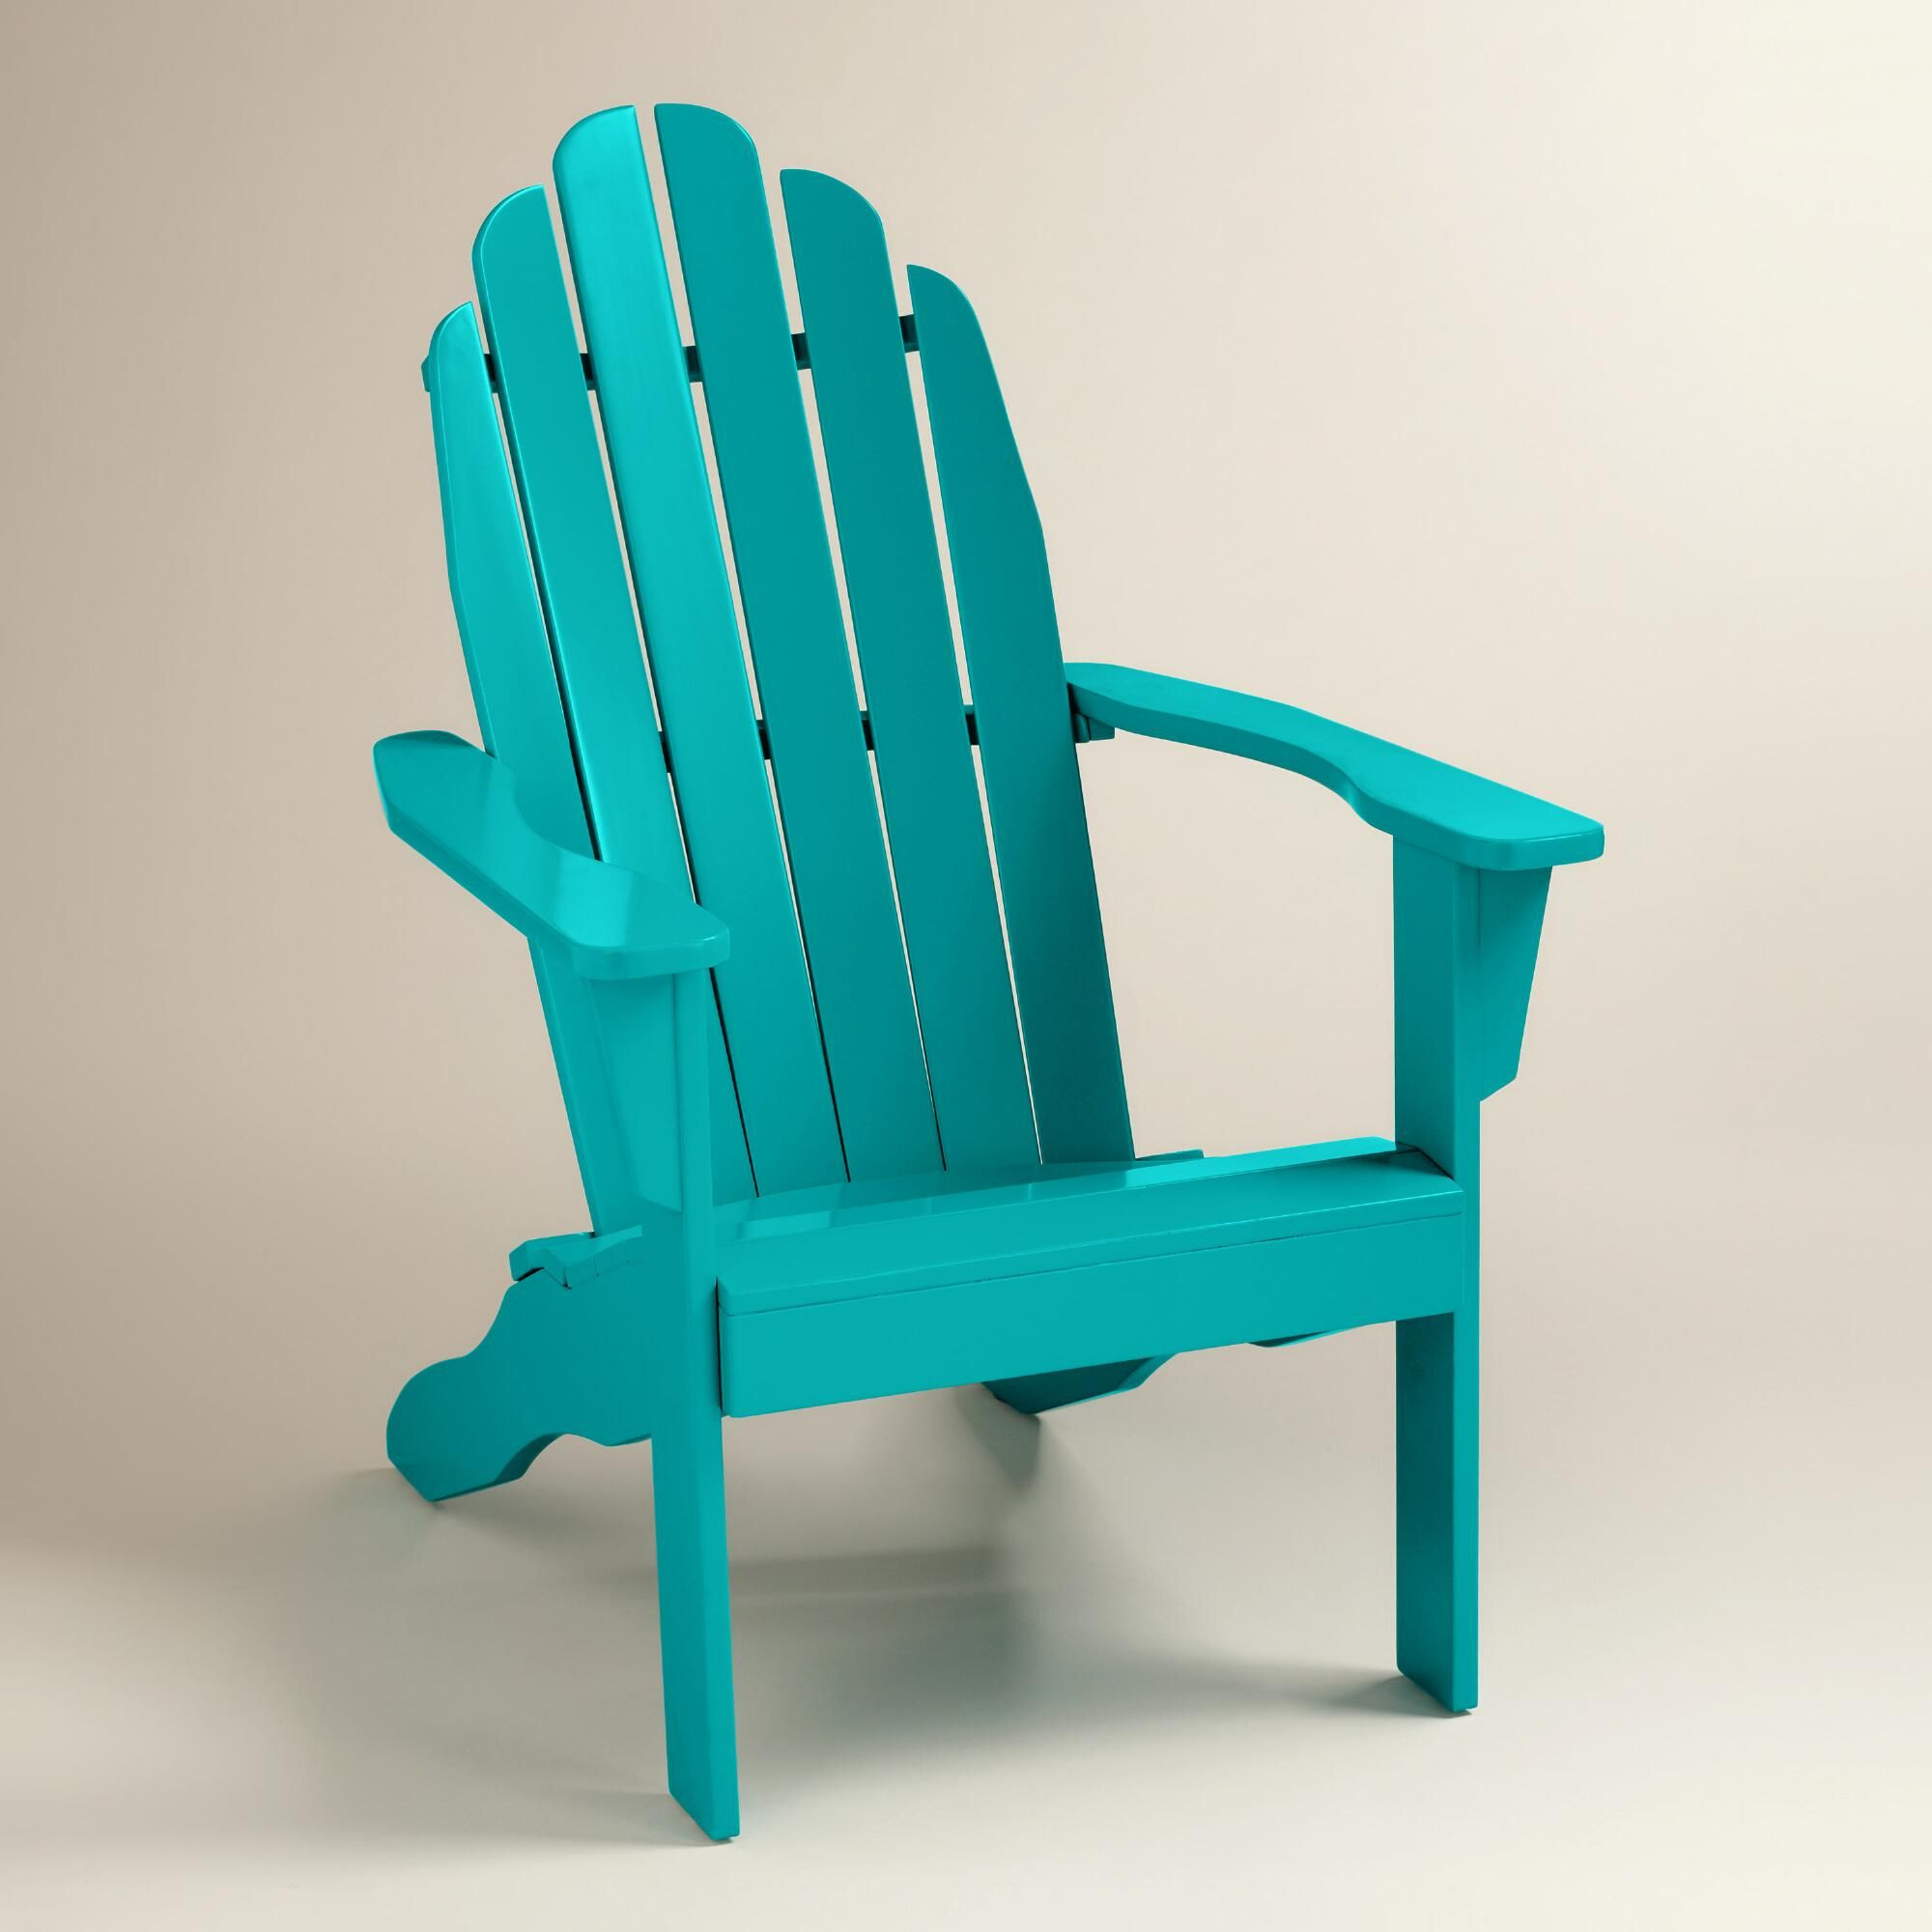 Built For Comfort Our Exclusive Light Blue Adirondack Chair